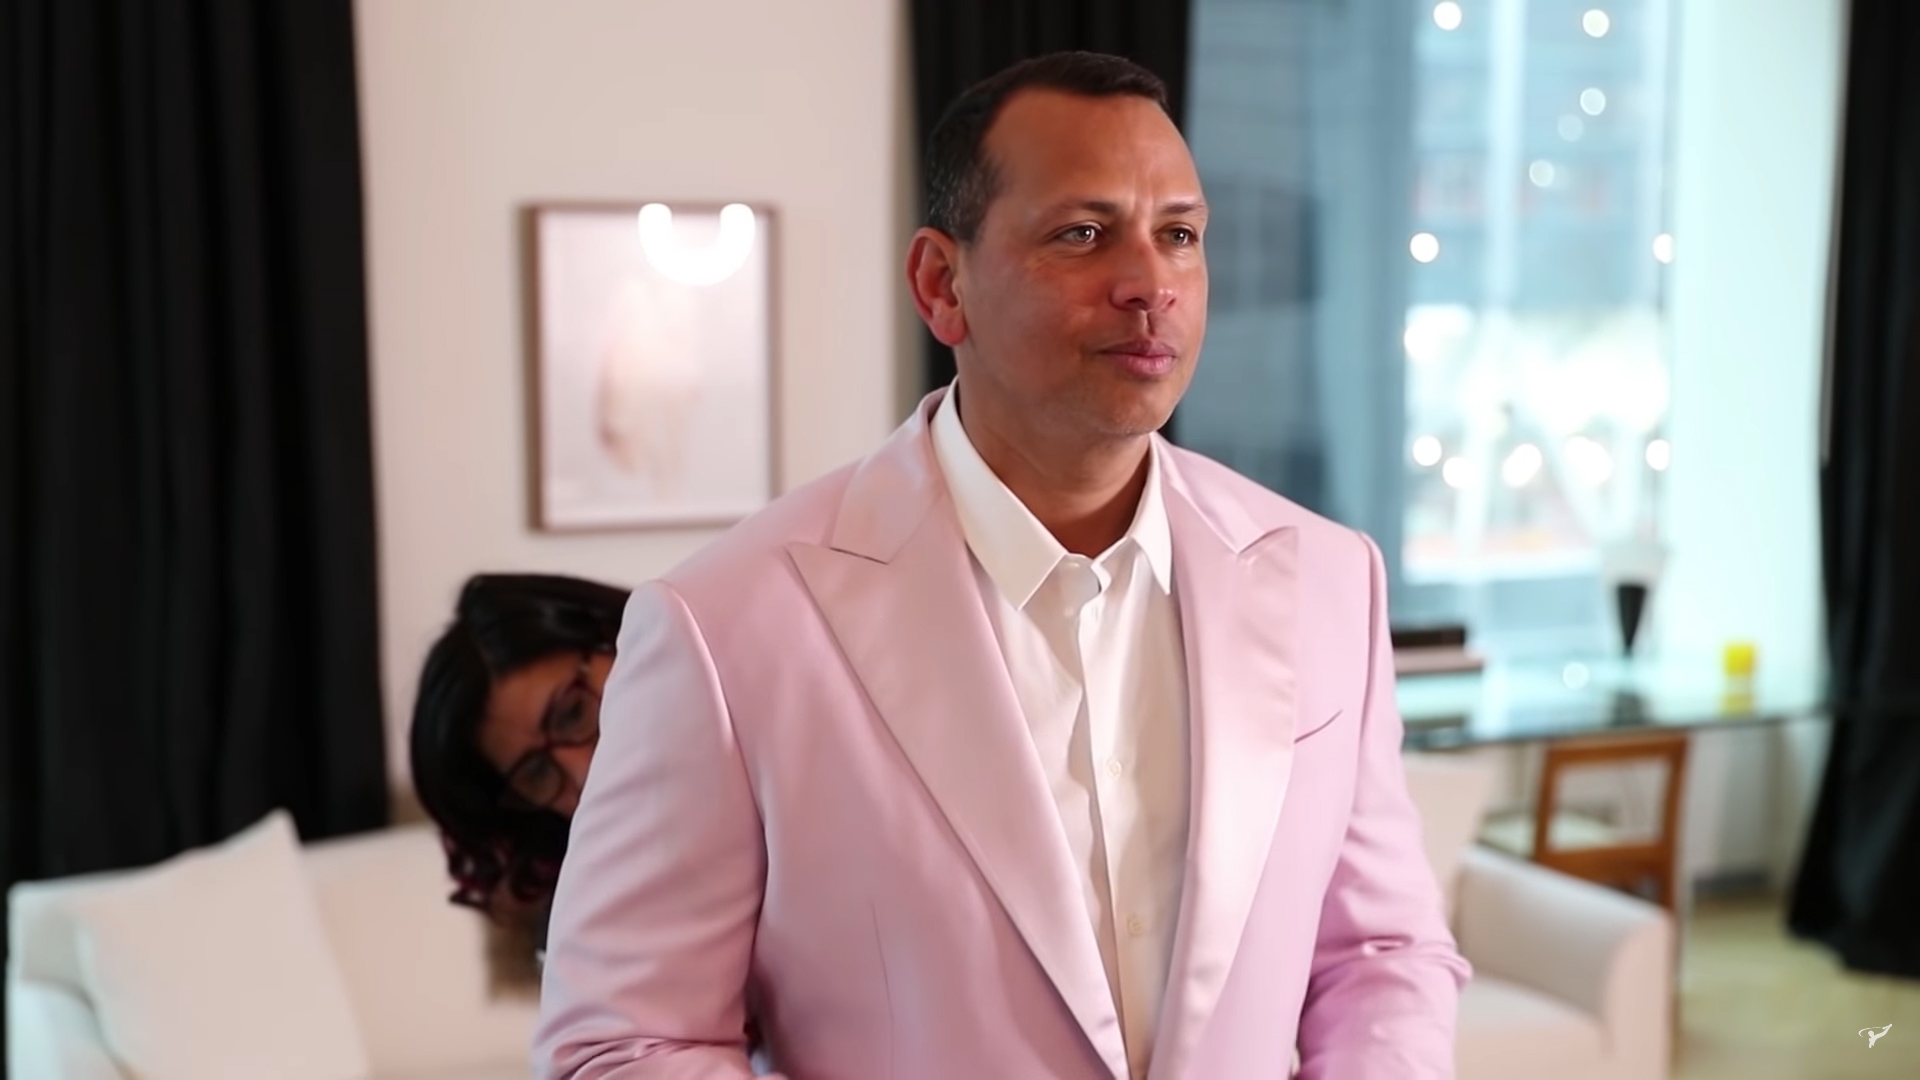 Alex Rodriguez Diet Met Gala 2019 - Alex Rodriguez gets ready for the Met Gala.